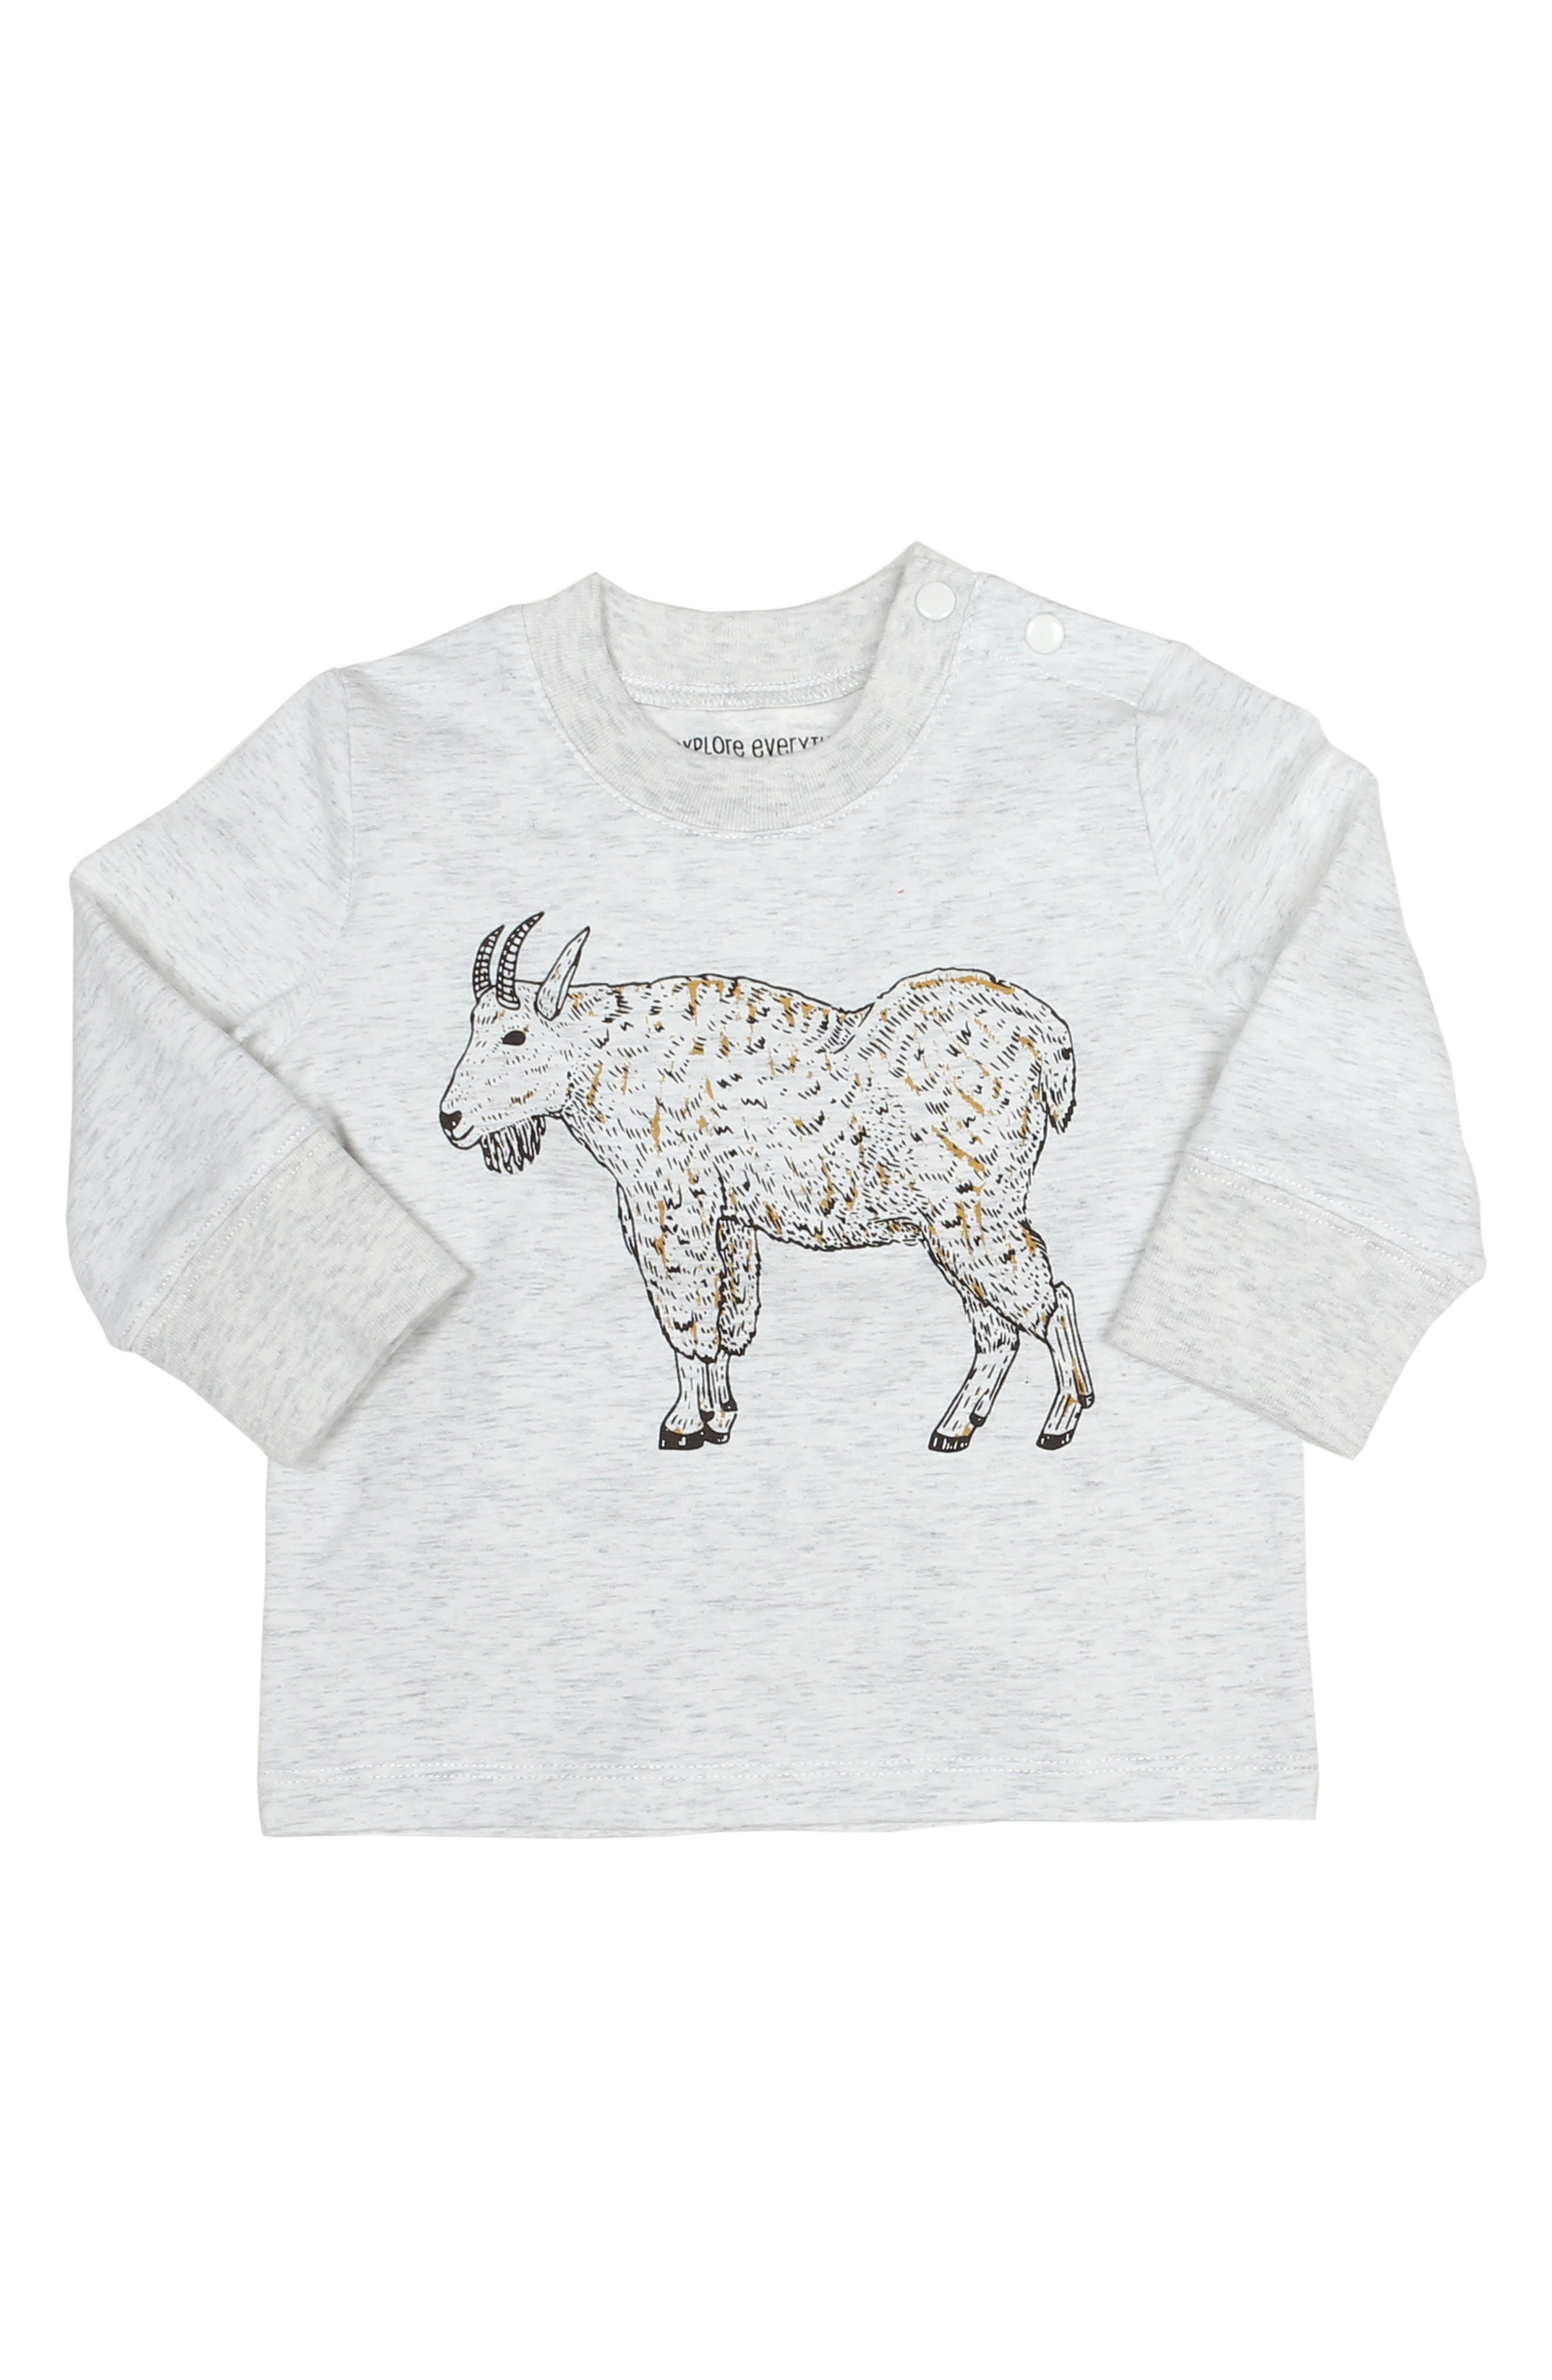 Billy Goat Graphic T-Shirt, Main, color, HEATHER GREY